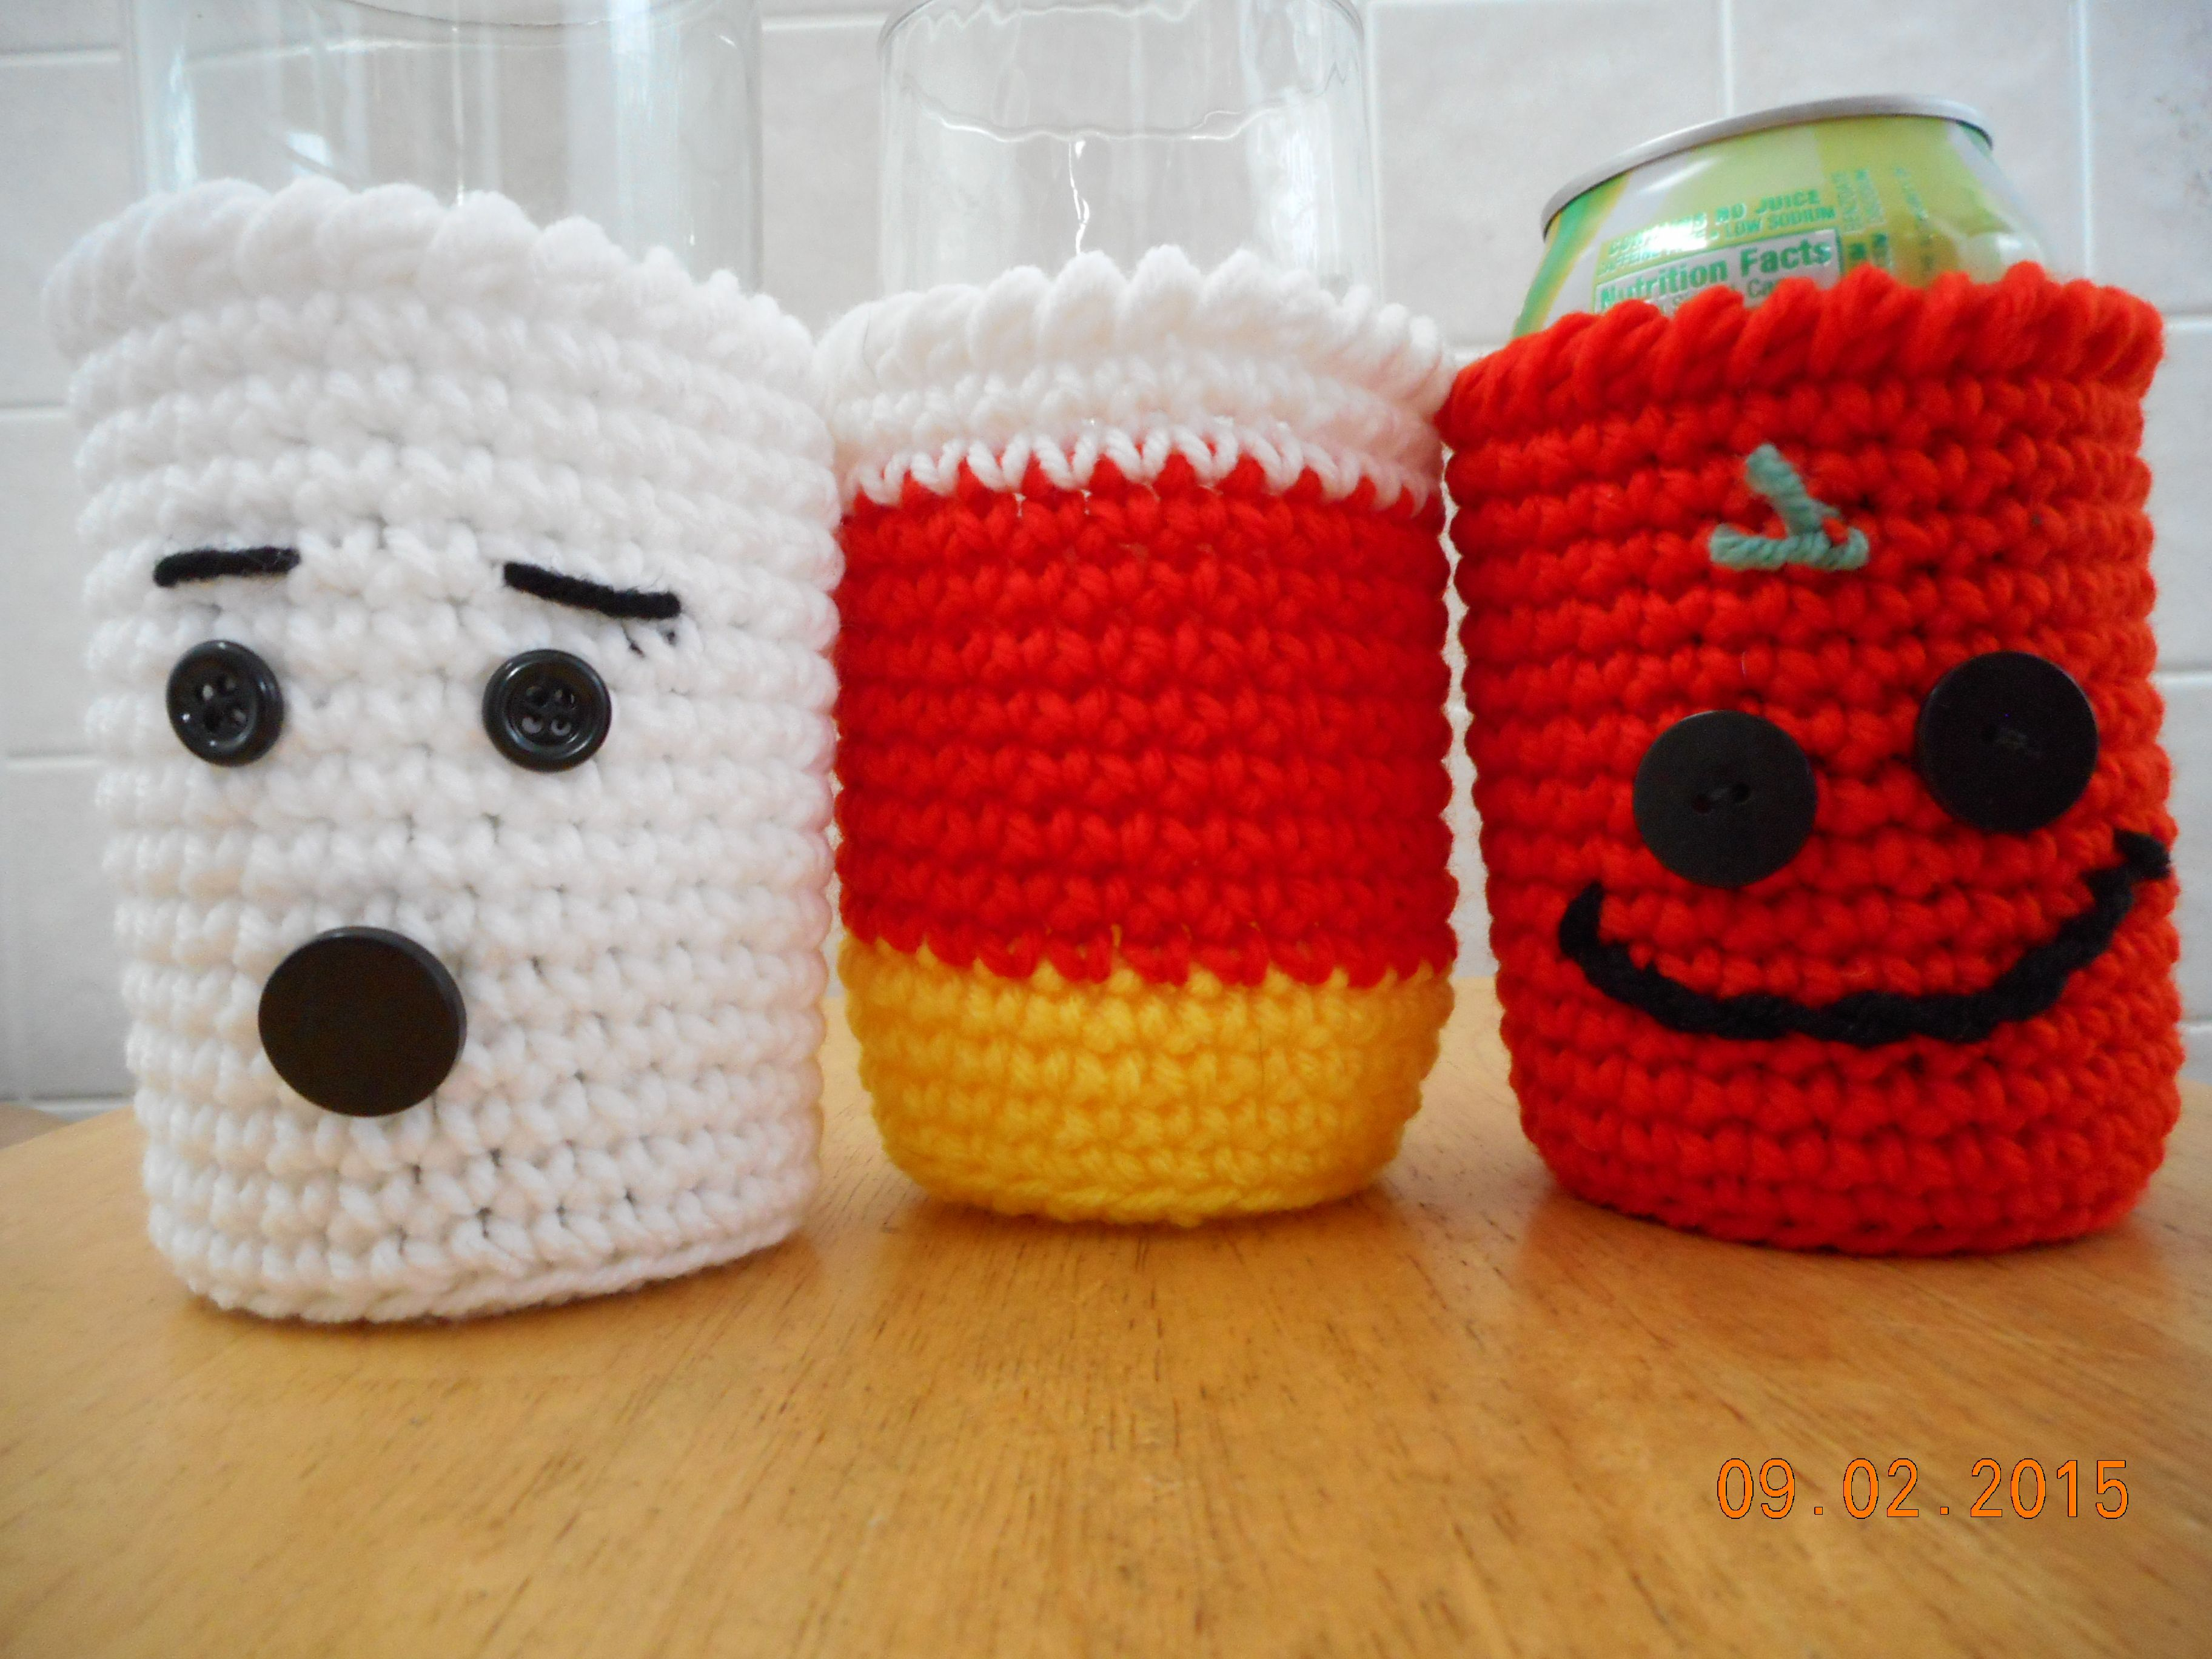 crocheted Halloween glass cozies available in etsy shop DebbyWebbysCreations